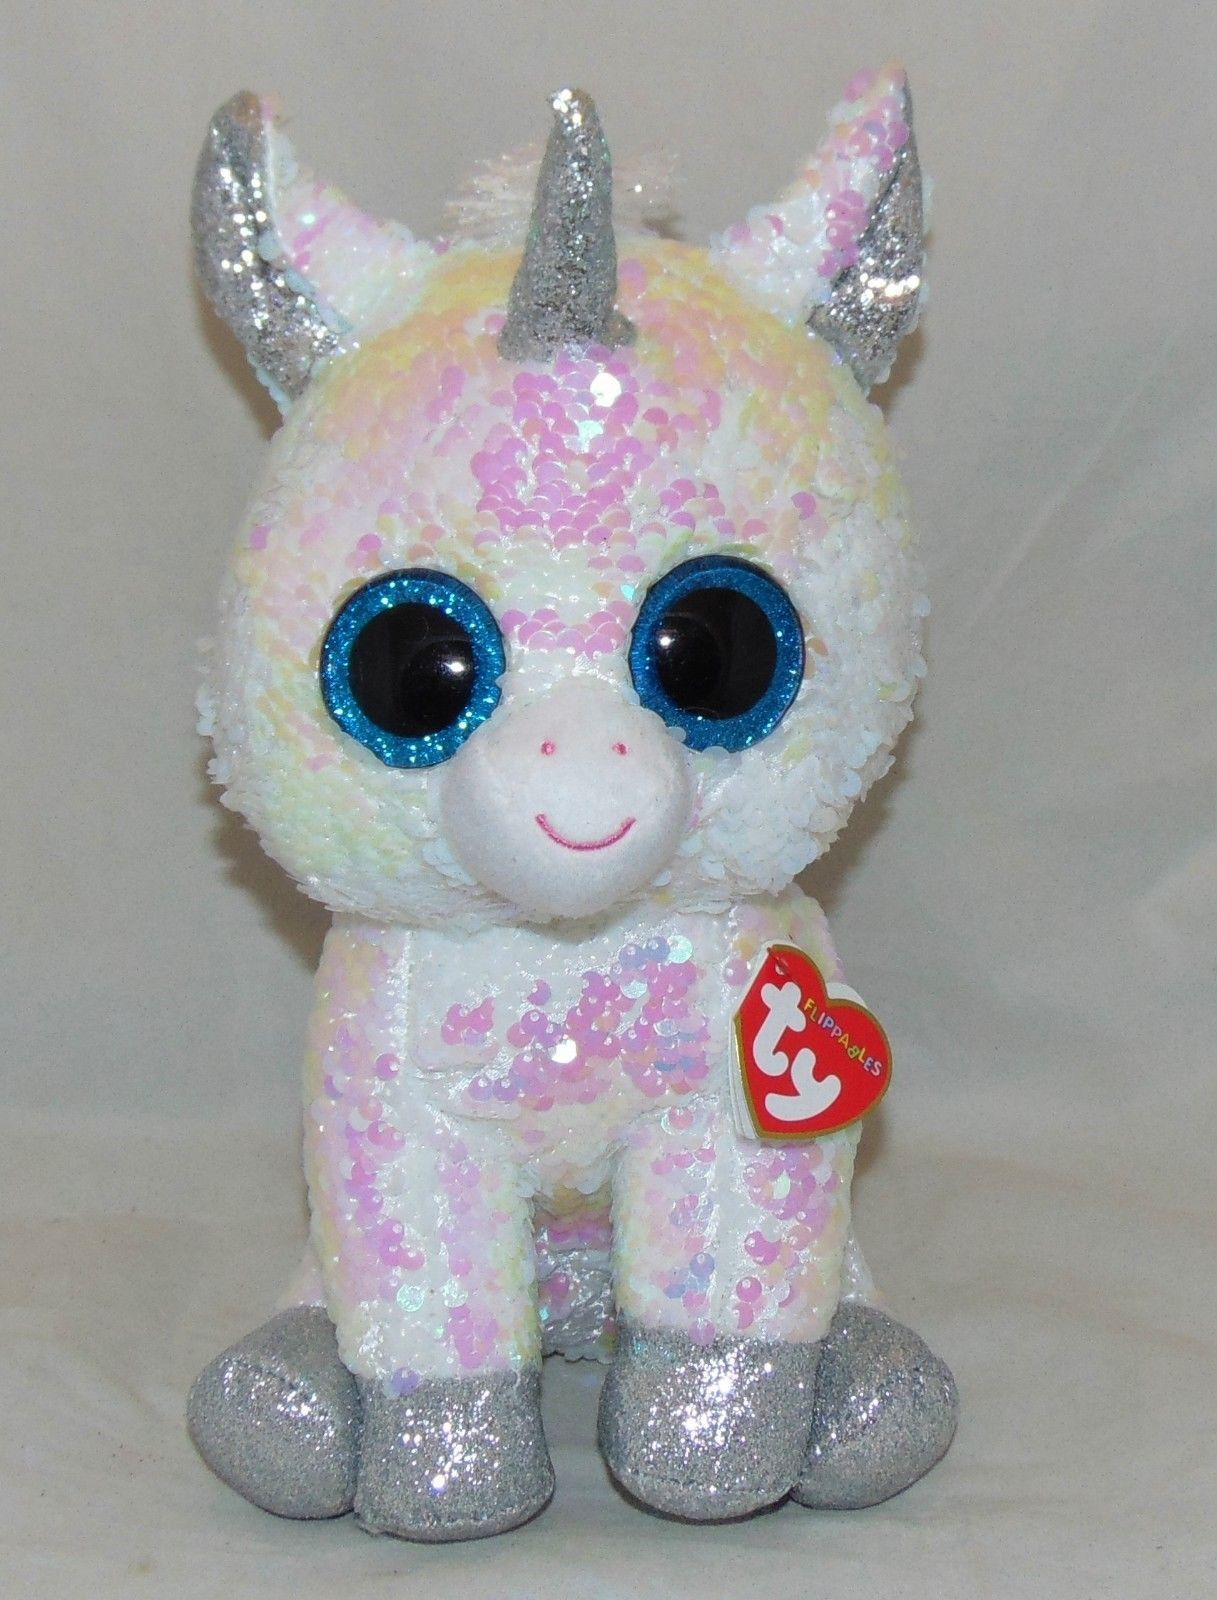 Ty 19203  Hot New Toy! Ty Flippables Diamond Unicorn Color Changing Sequins  Medium 9 Htf -  BUY IT NOW ONLY   16.99 on  eBay  flippables  diamond   unicorn ... 29649608c922